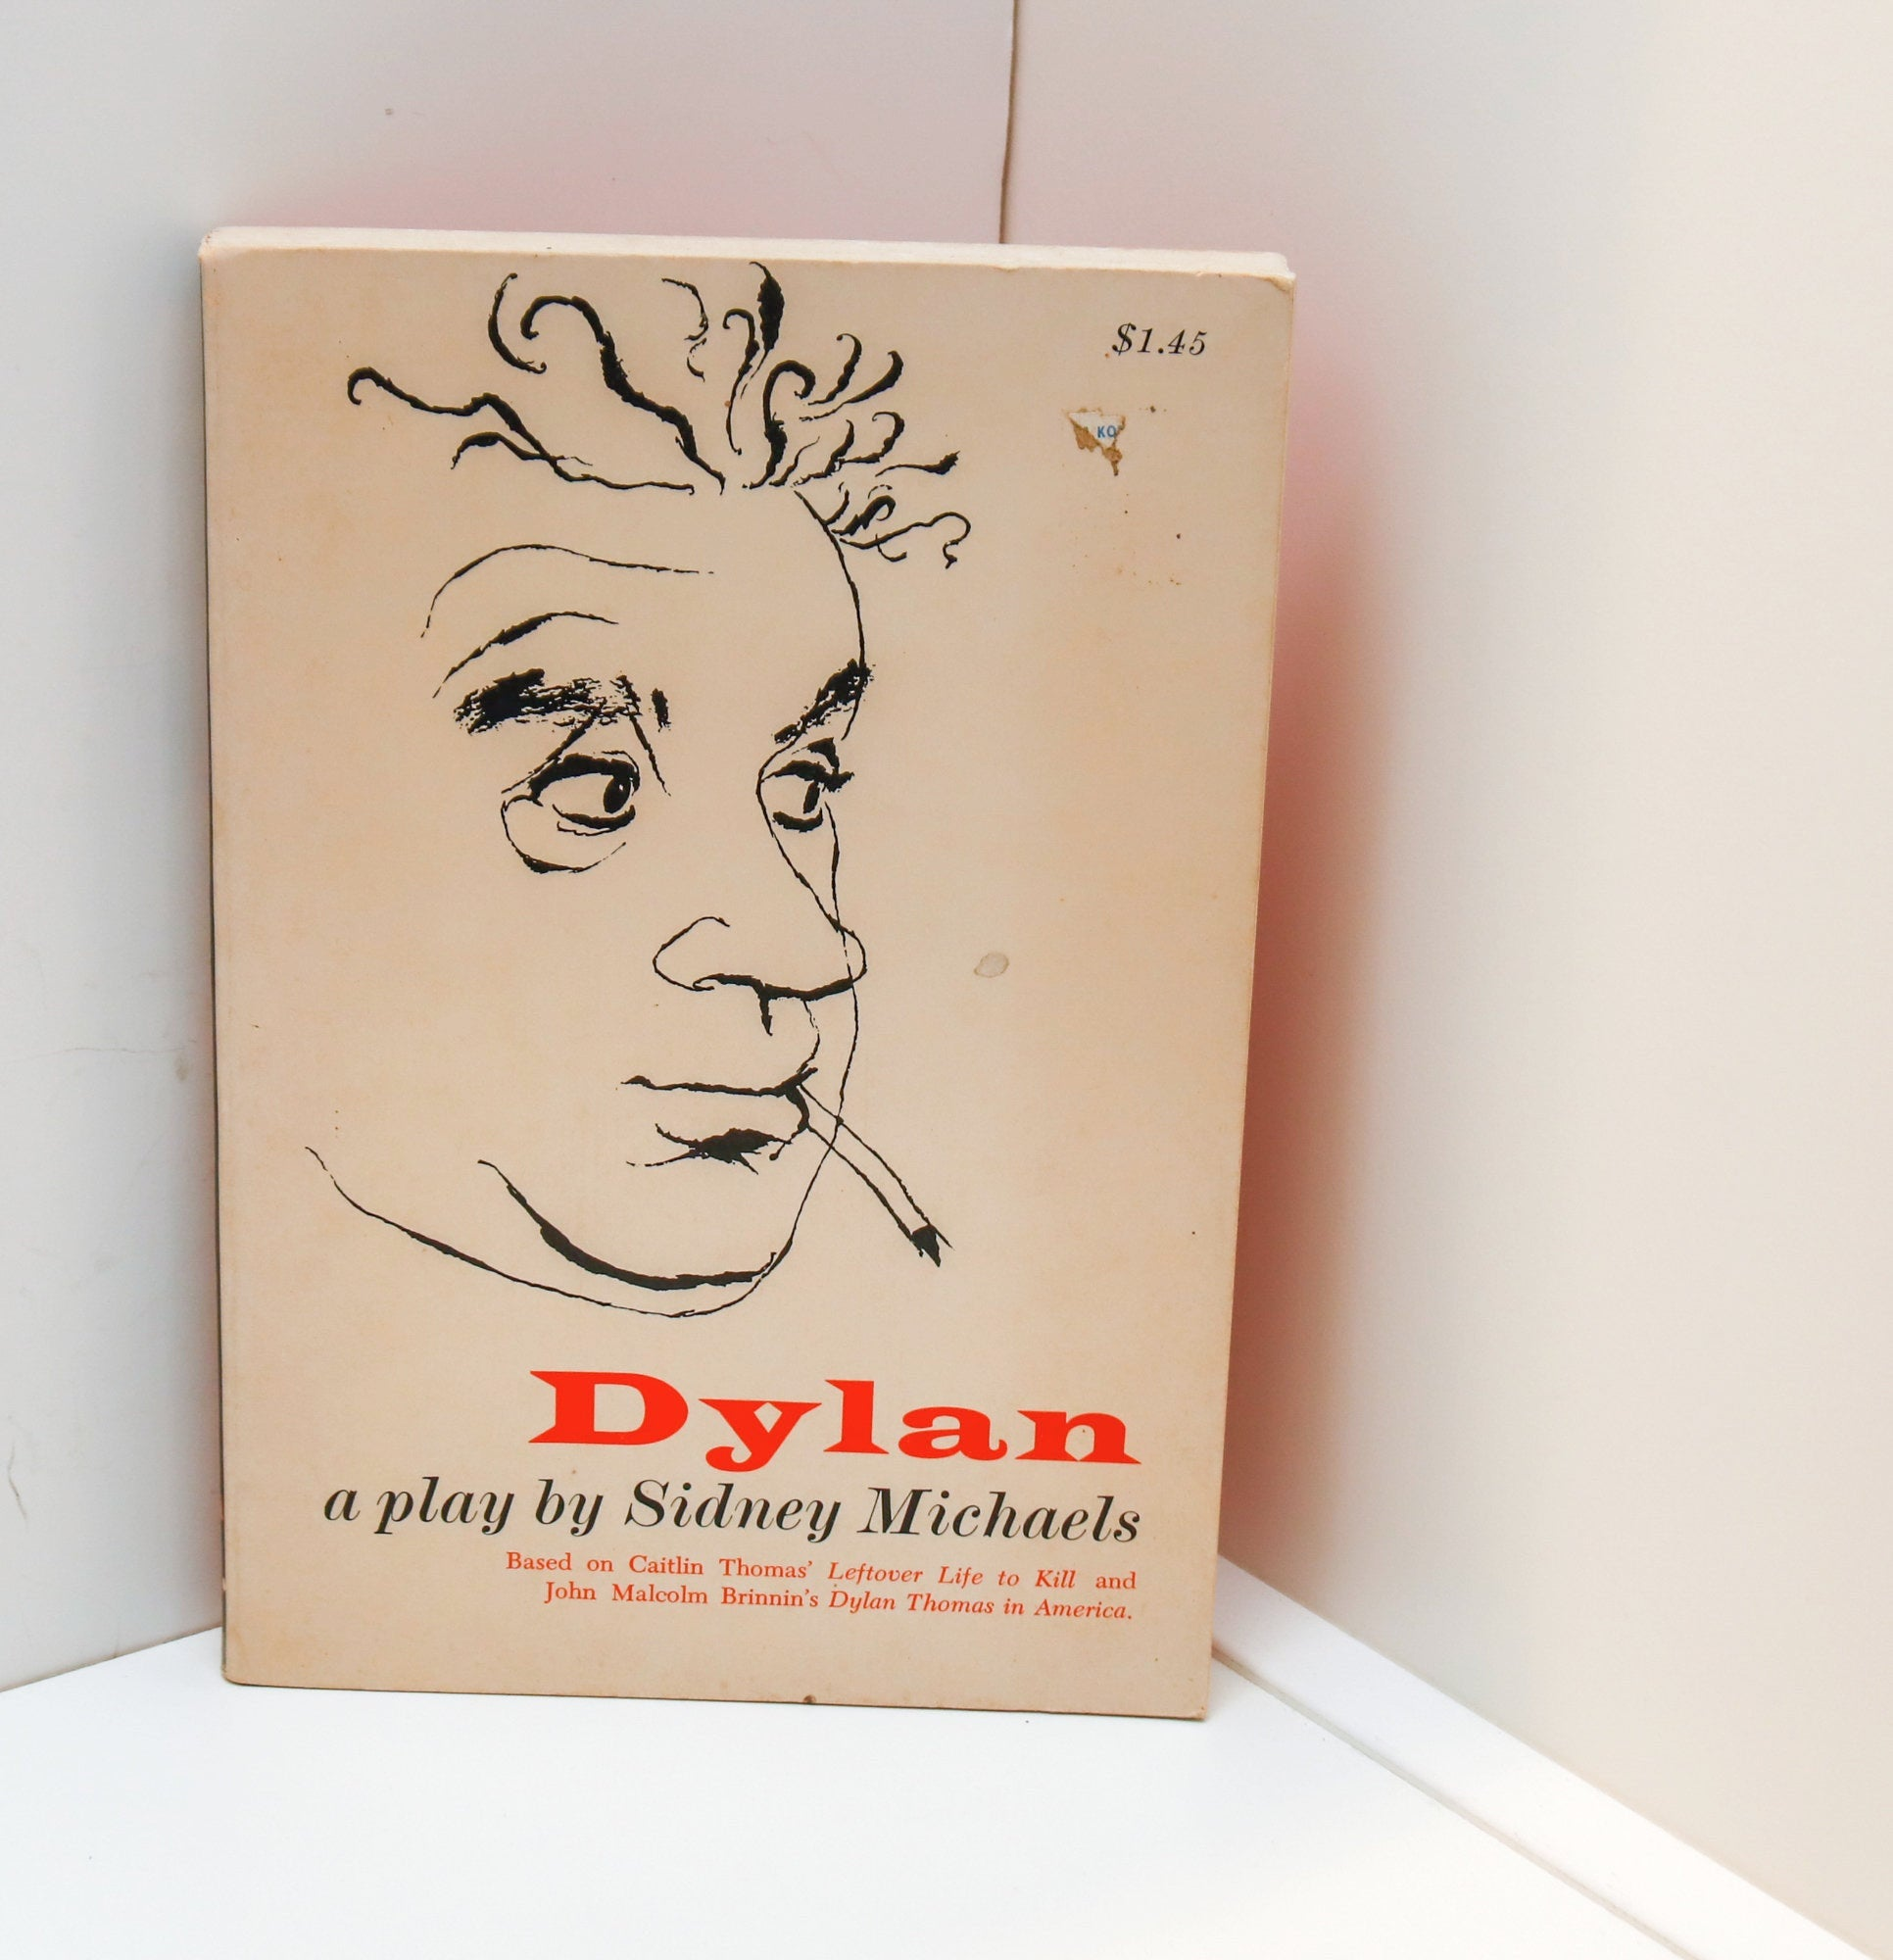 Dylan - A Play [1964] First edition by Sidney Michaels Alec Guiness won the Tony for Best Actor